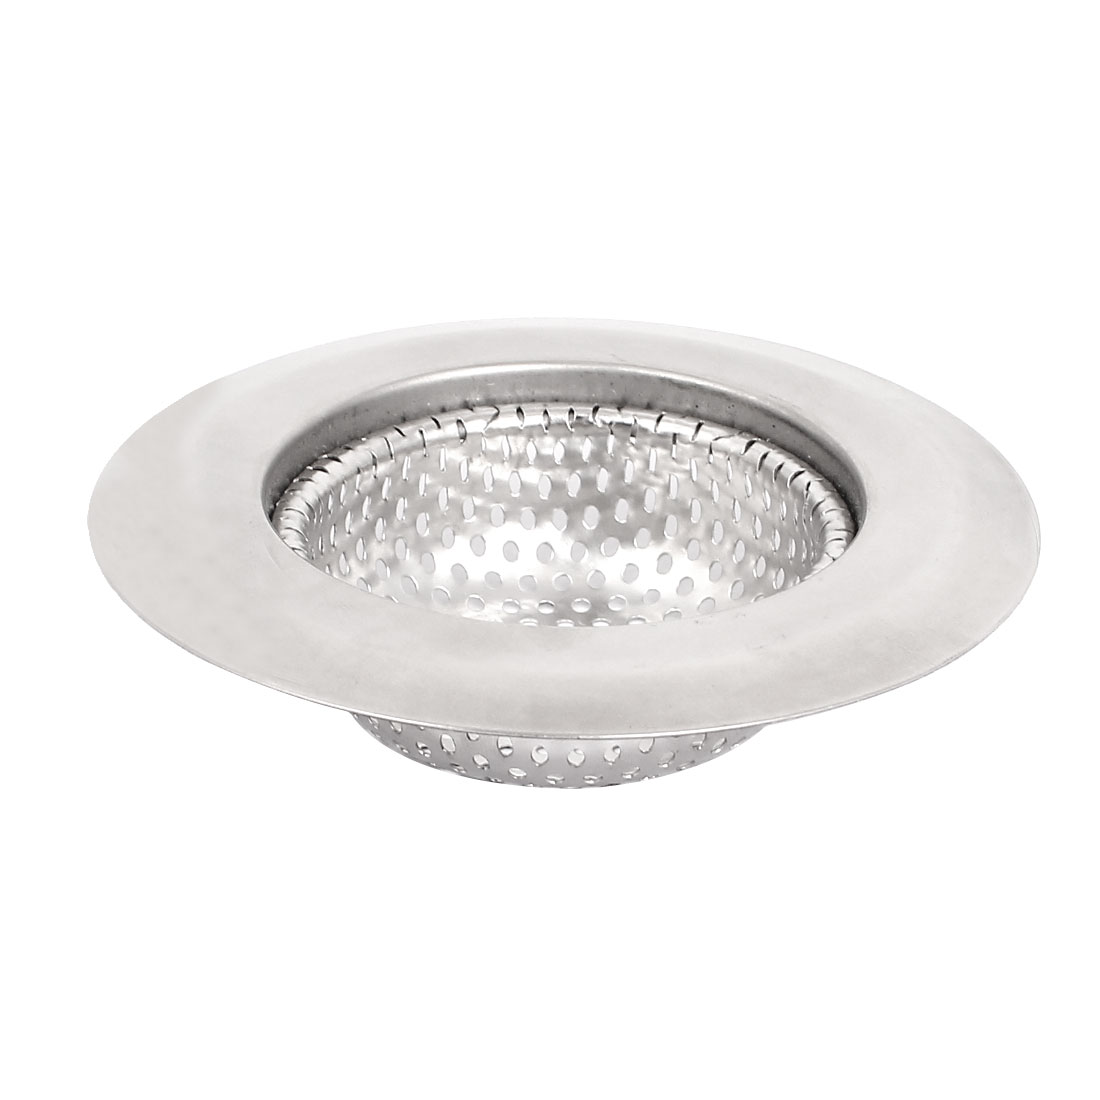 metal mesh sink stopper strainer basket shower bathtub drain net protector